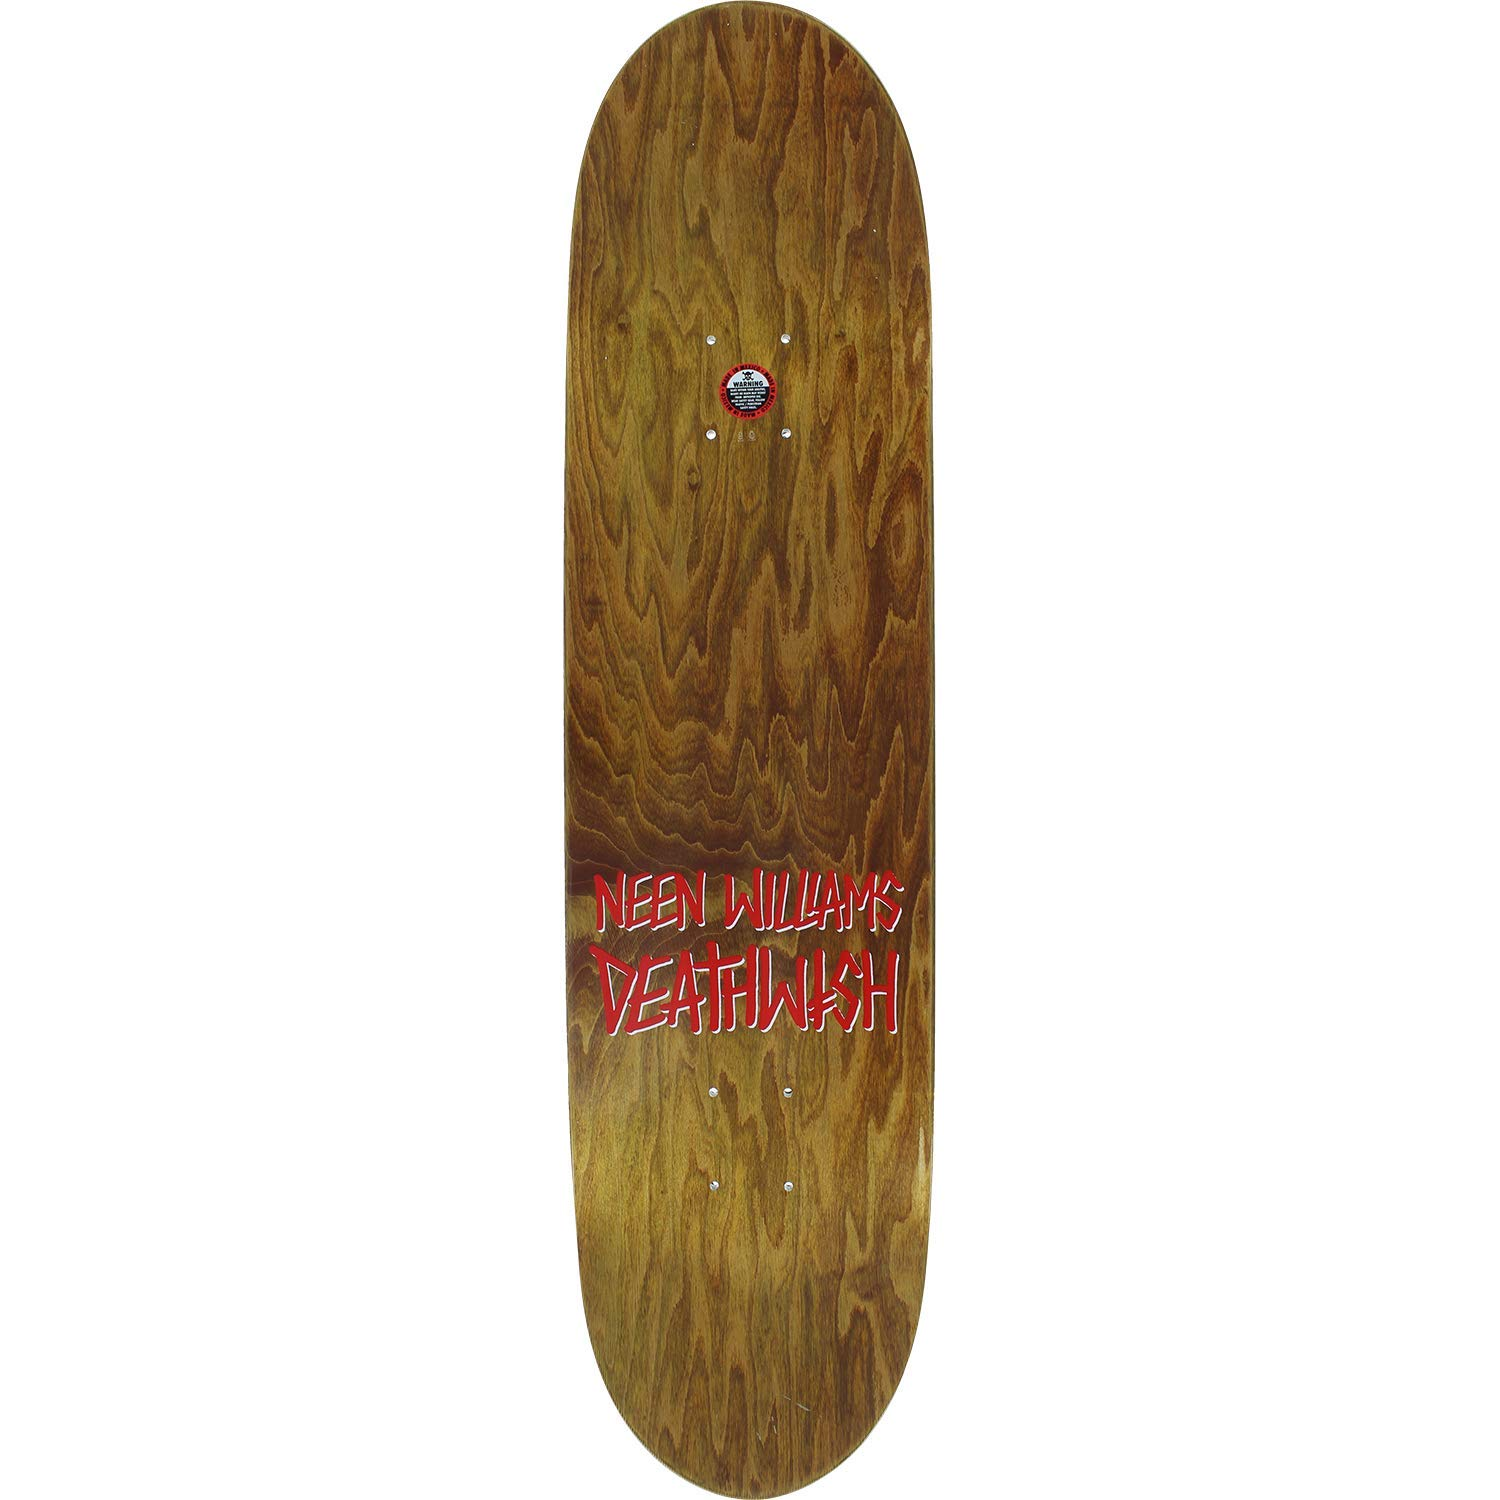 Deathwish Williams Beast Slayer Skateboard Deck 8.0 Deck ONLY Bundled with Free 1 Hardware Set